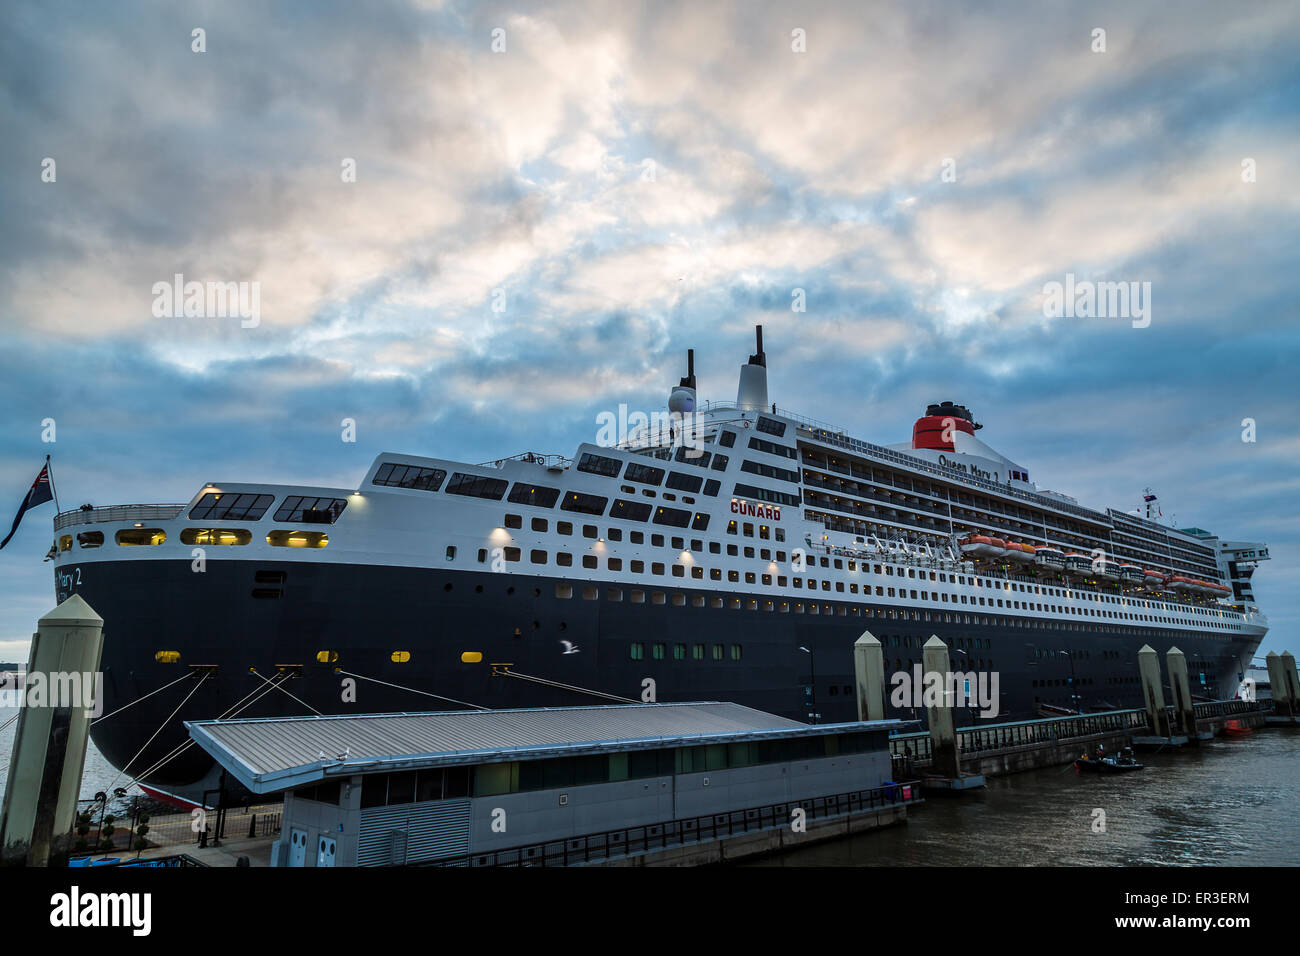 Queen Mary 2 berthed in Liverpool. - Stock Image